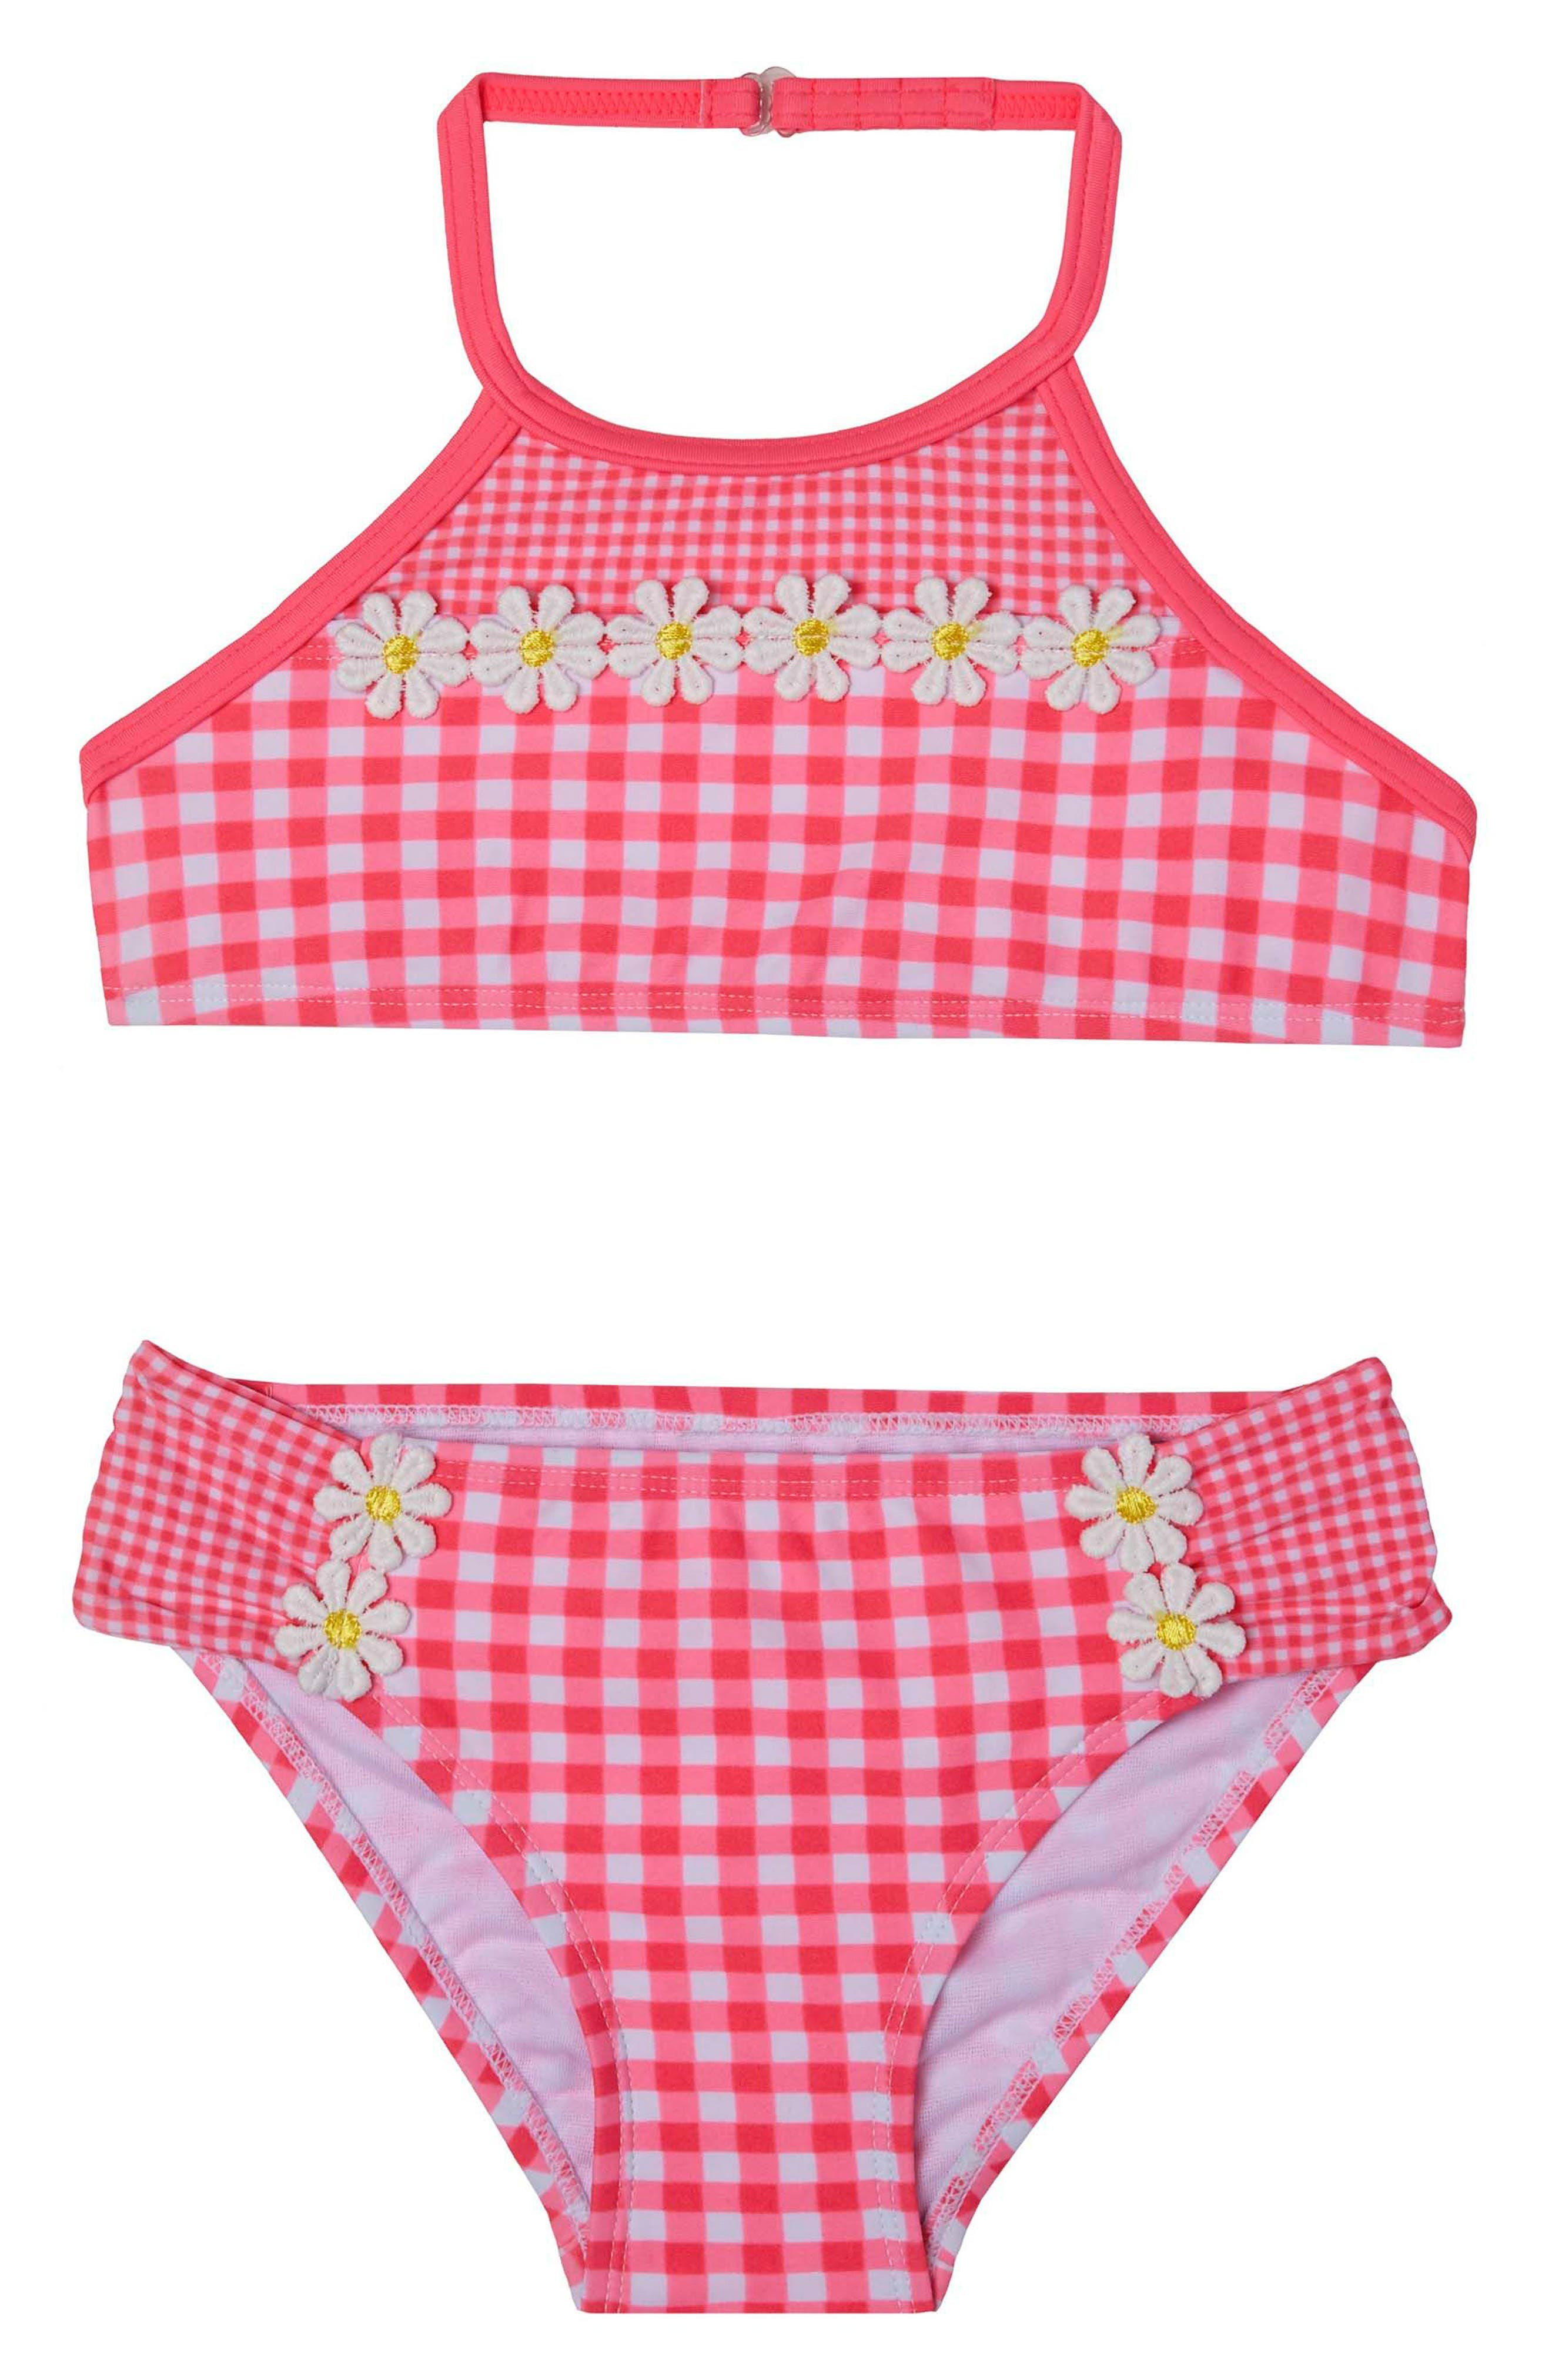 Alternate Image 1 Selected - Hula Star Picnic Gingham Two-Piece Swimsuit (Toddler Girls & Little Girls)